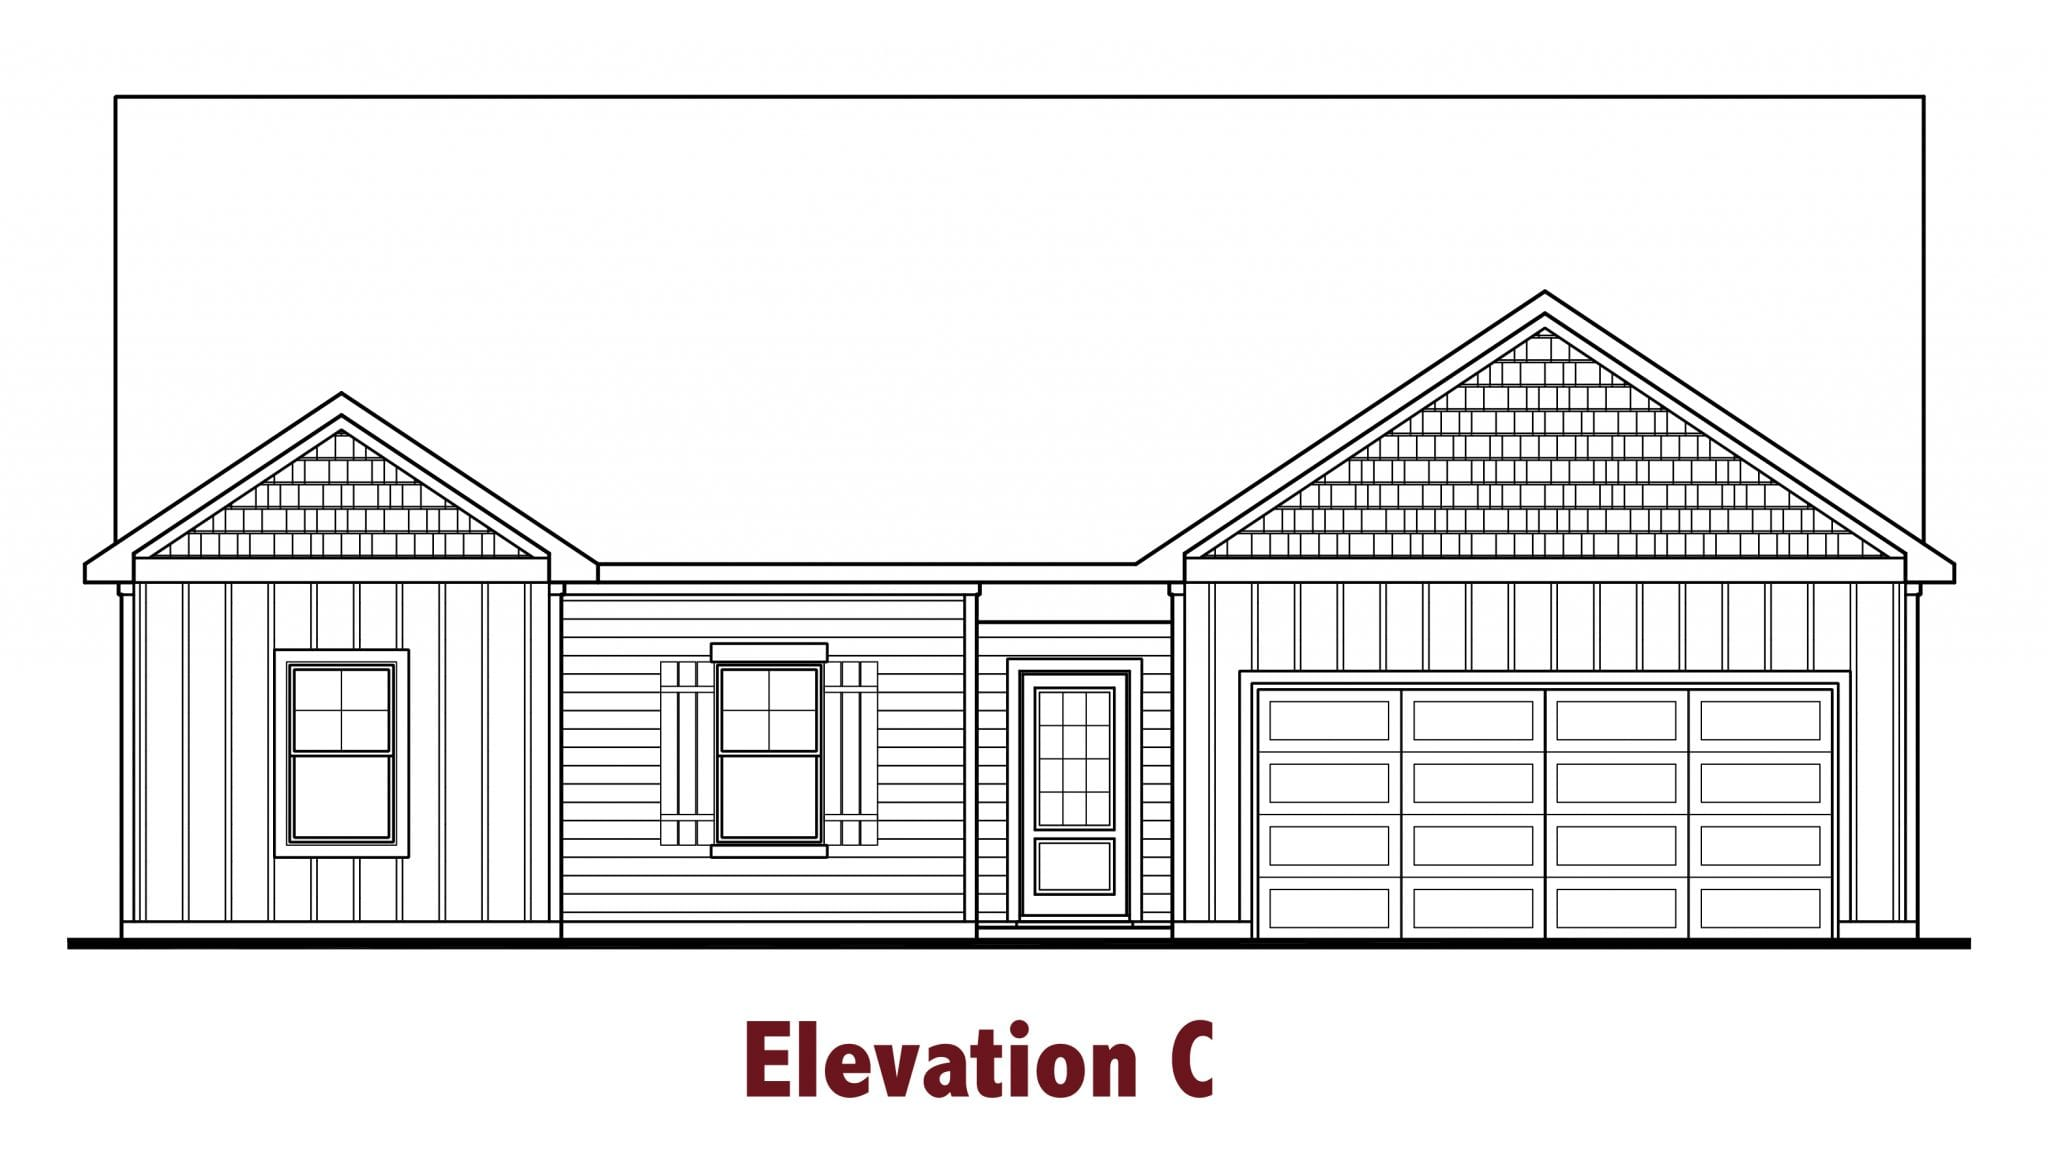 Denton elevations Image